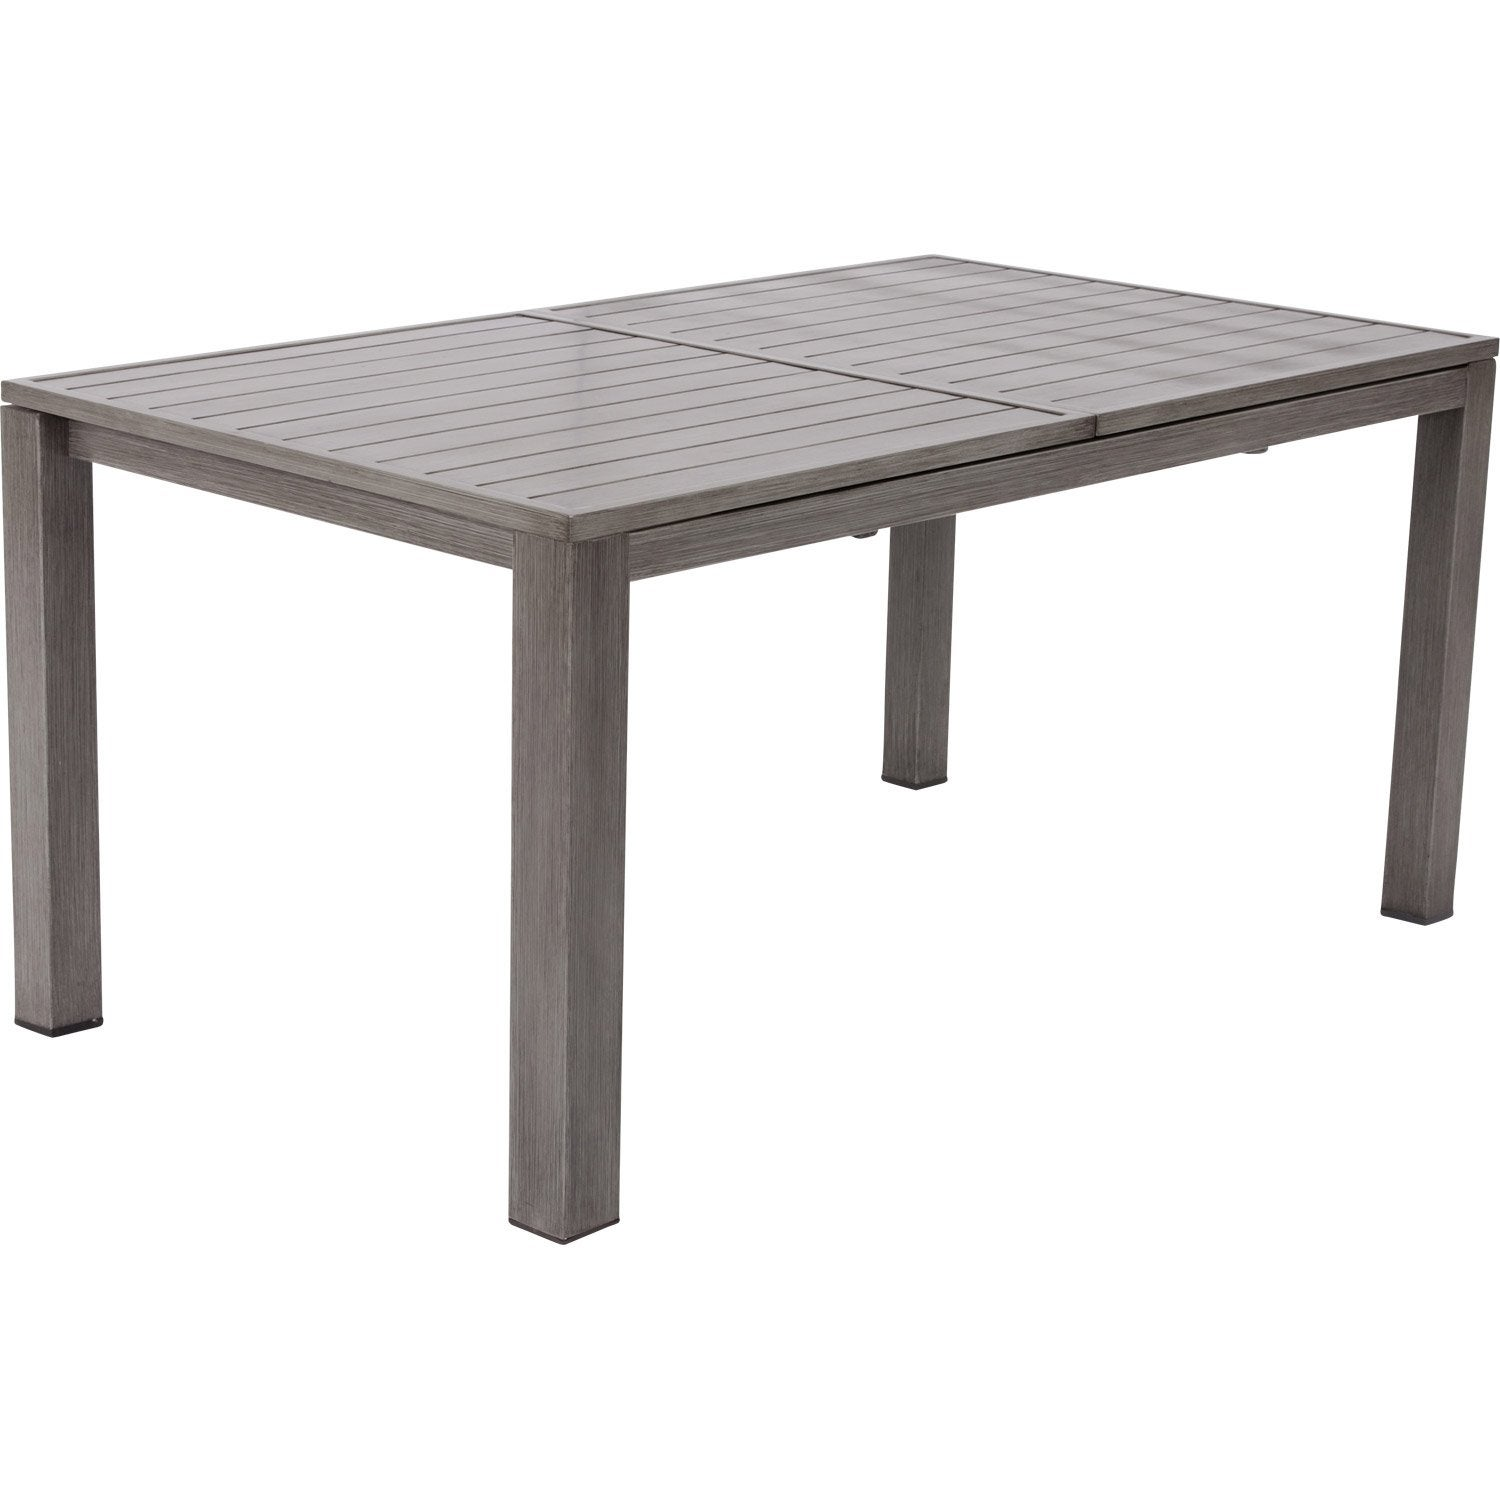 Table De Jardin Naterial Antibes Rectangulaire Gris Look Bois 6 8 Personnes Leroy Merlin